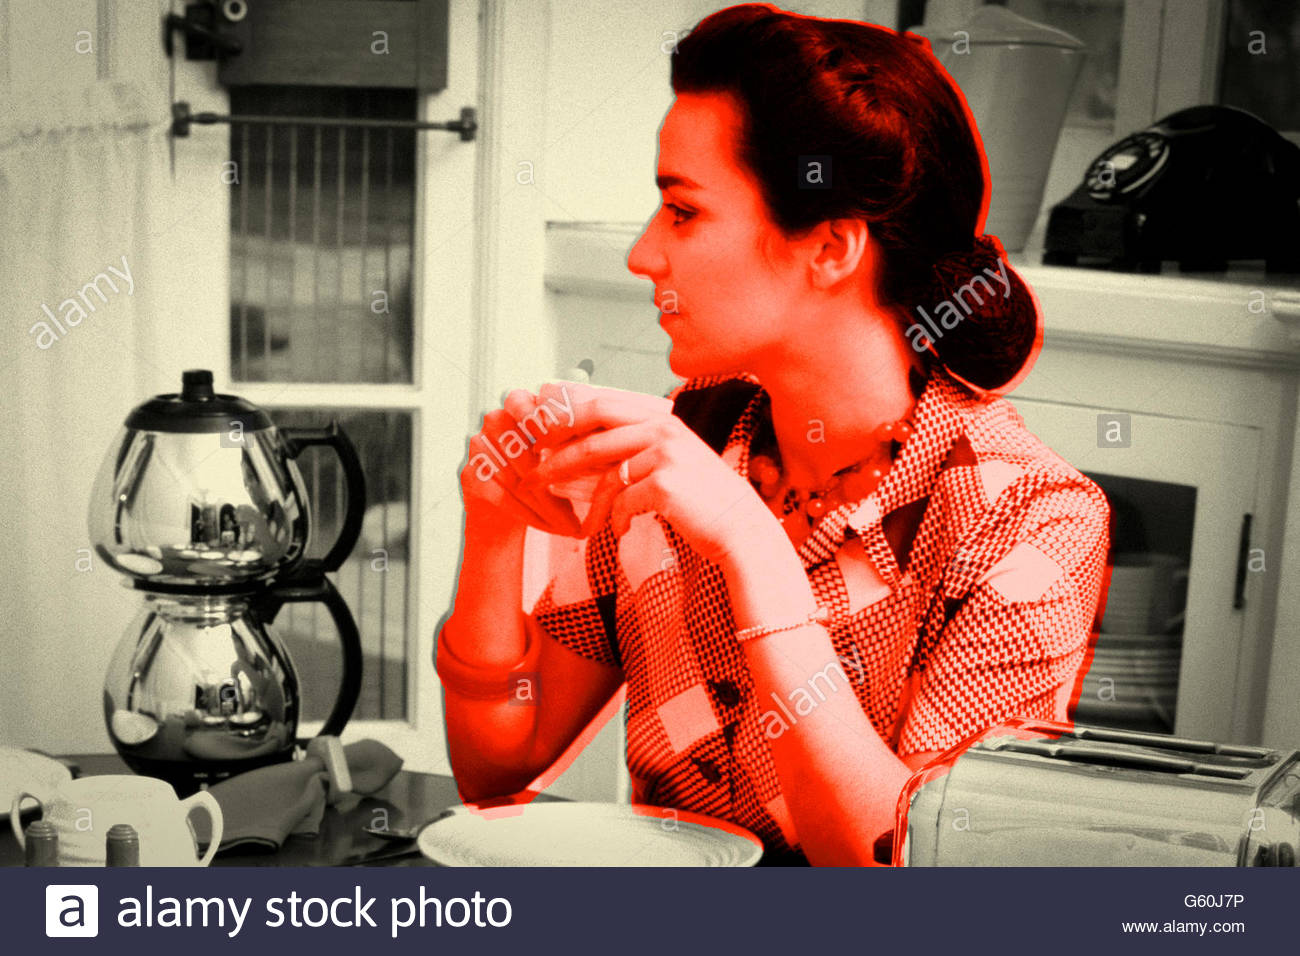 Retro Styled woman at breakfast holding coffee mug. - Stock Image